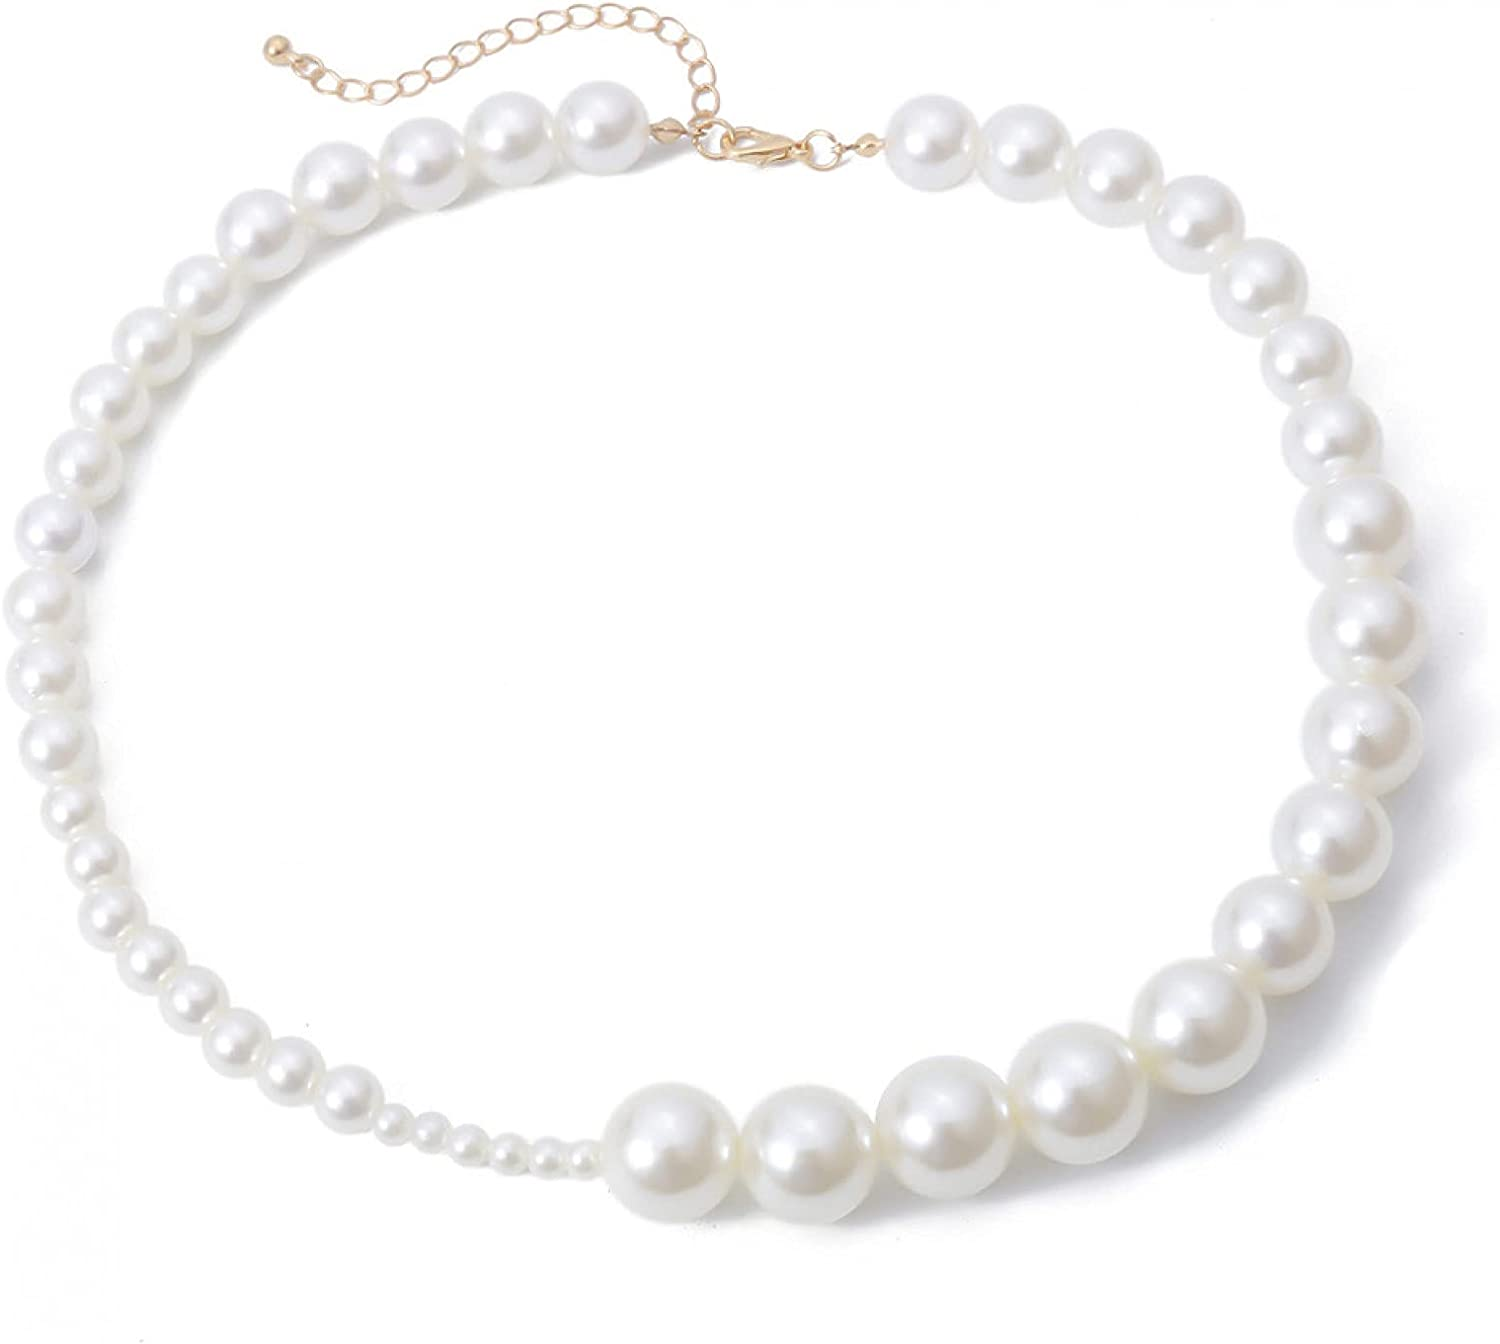 Necklace Pendant Jewelry Pearls Chain Choker Necklace for Female Elegant White Pearl Beads Classic Collar Necklace Wedding Jewelry Halloween Christmas Valentine's Day Birthday Gift